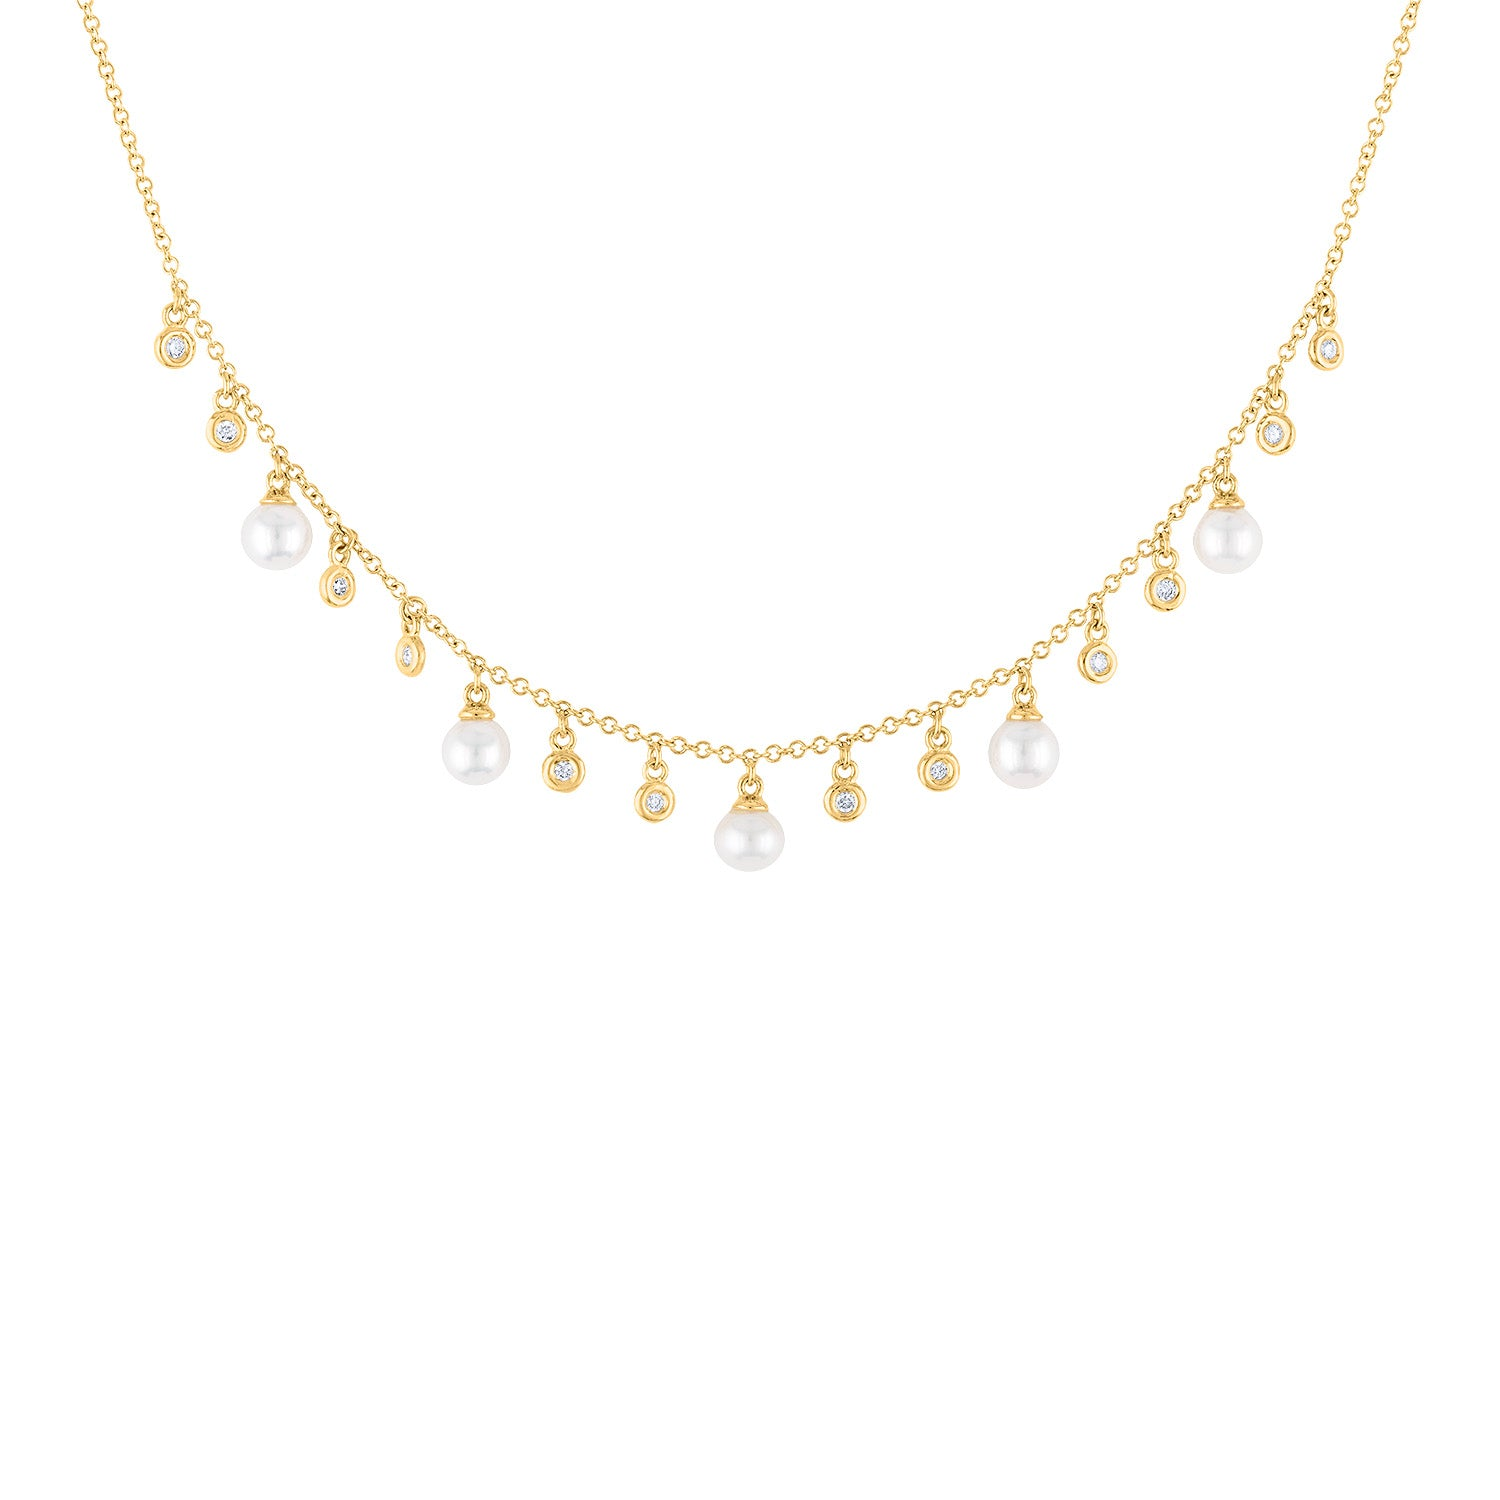 14KT GOLD BEZEL SET DIAMOND AND PEARL DANGLE NECKLACE